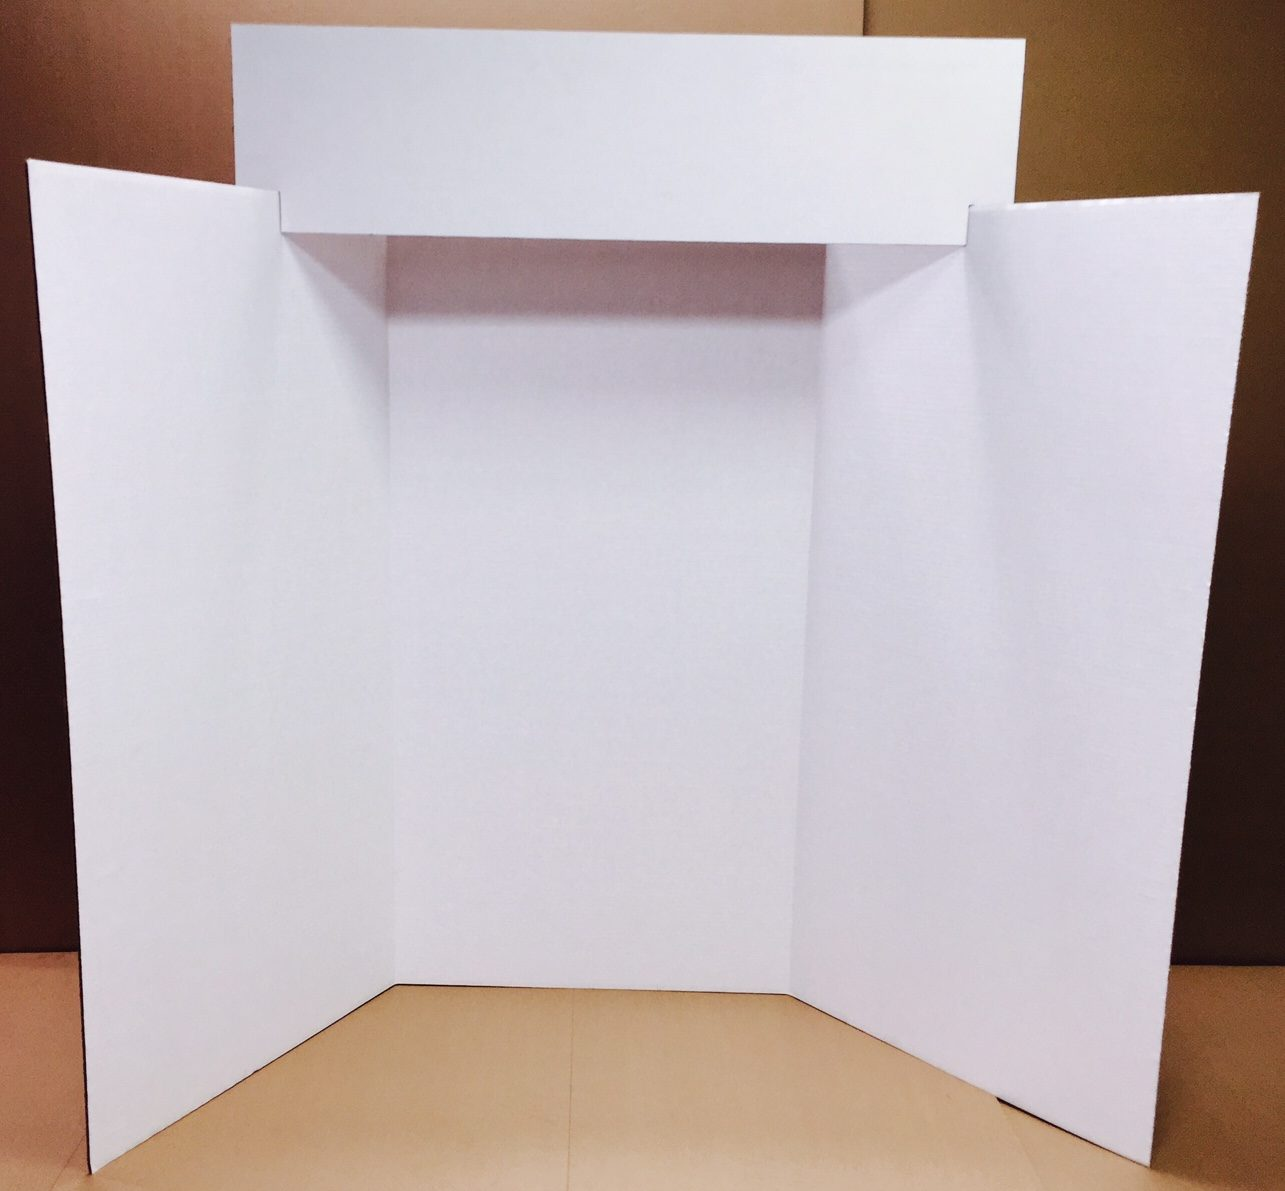 White Exhibit Board with Title Panel